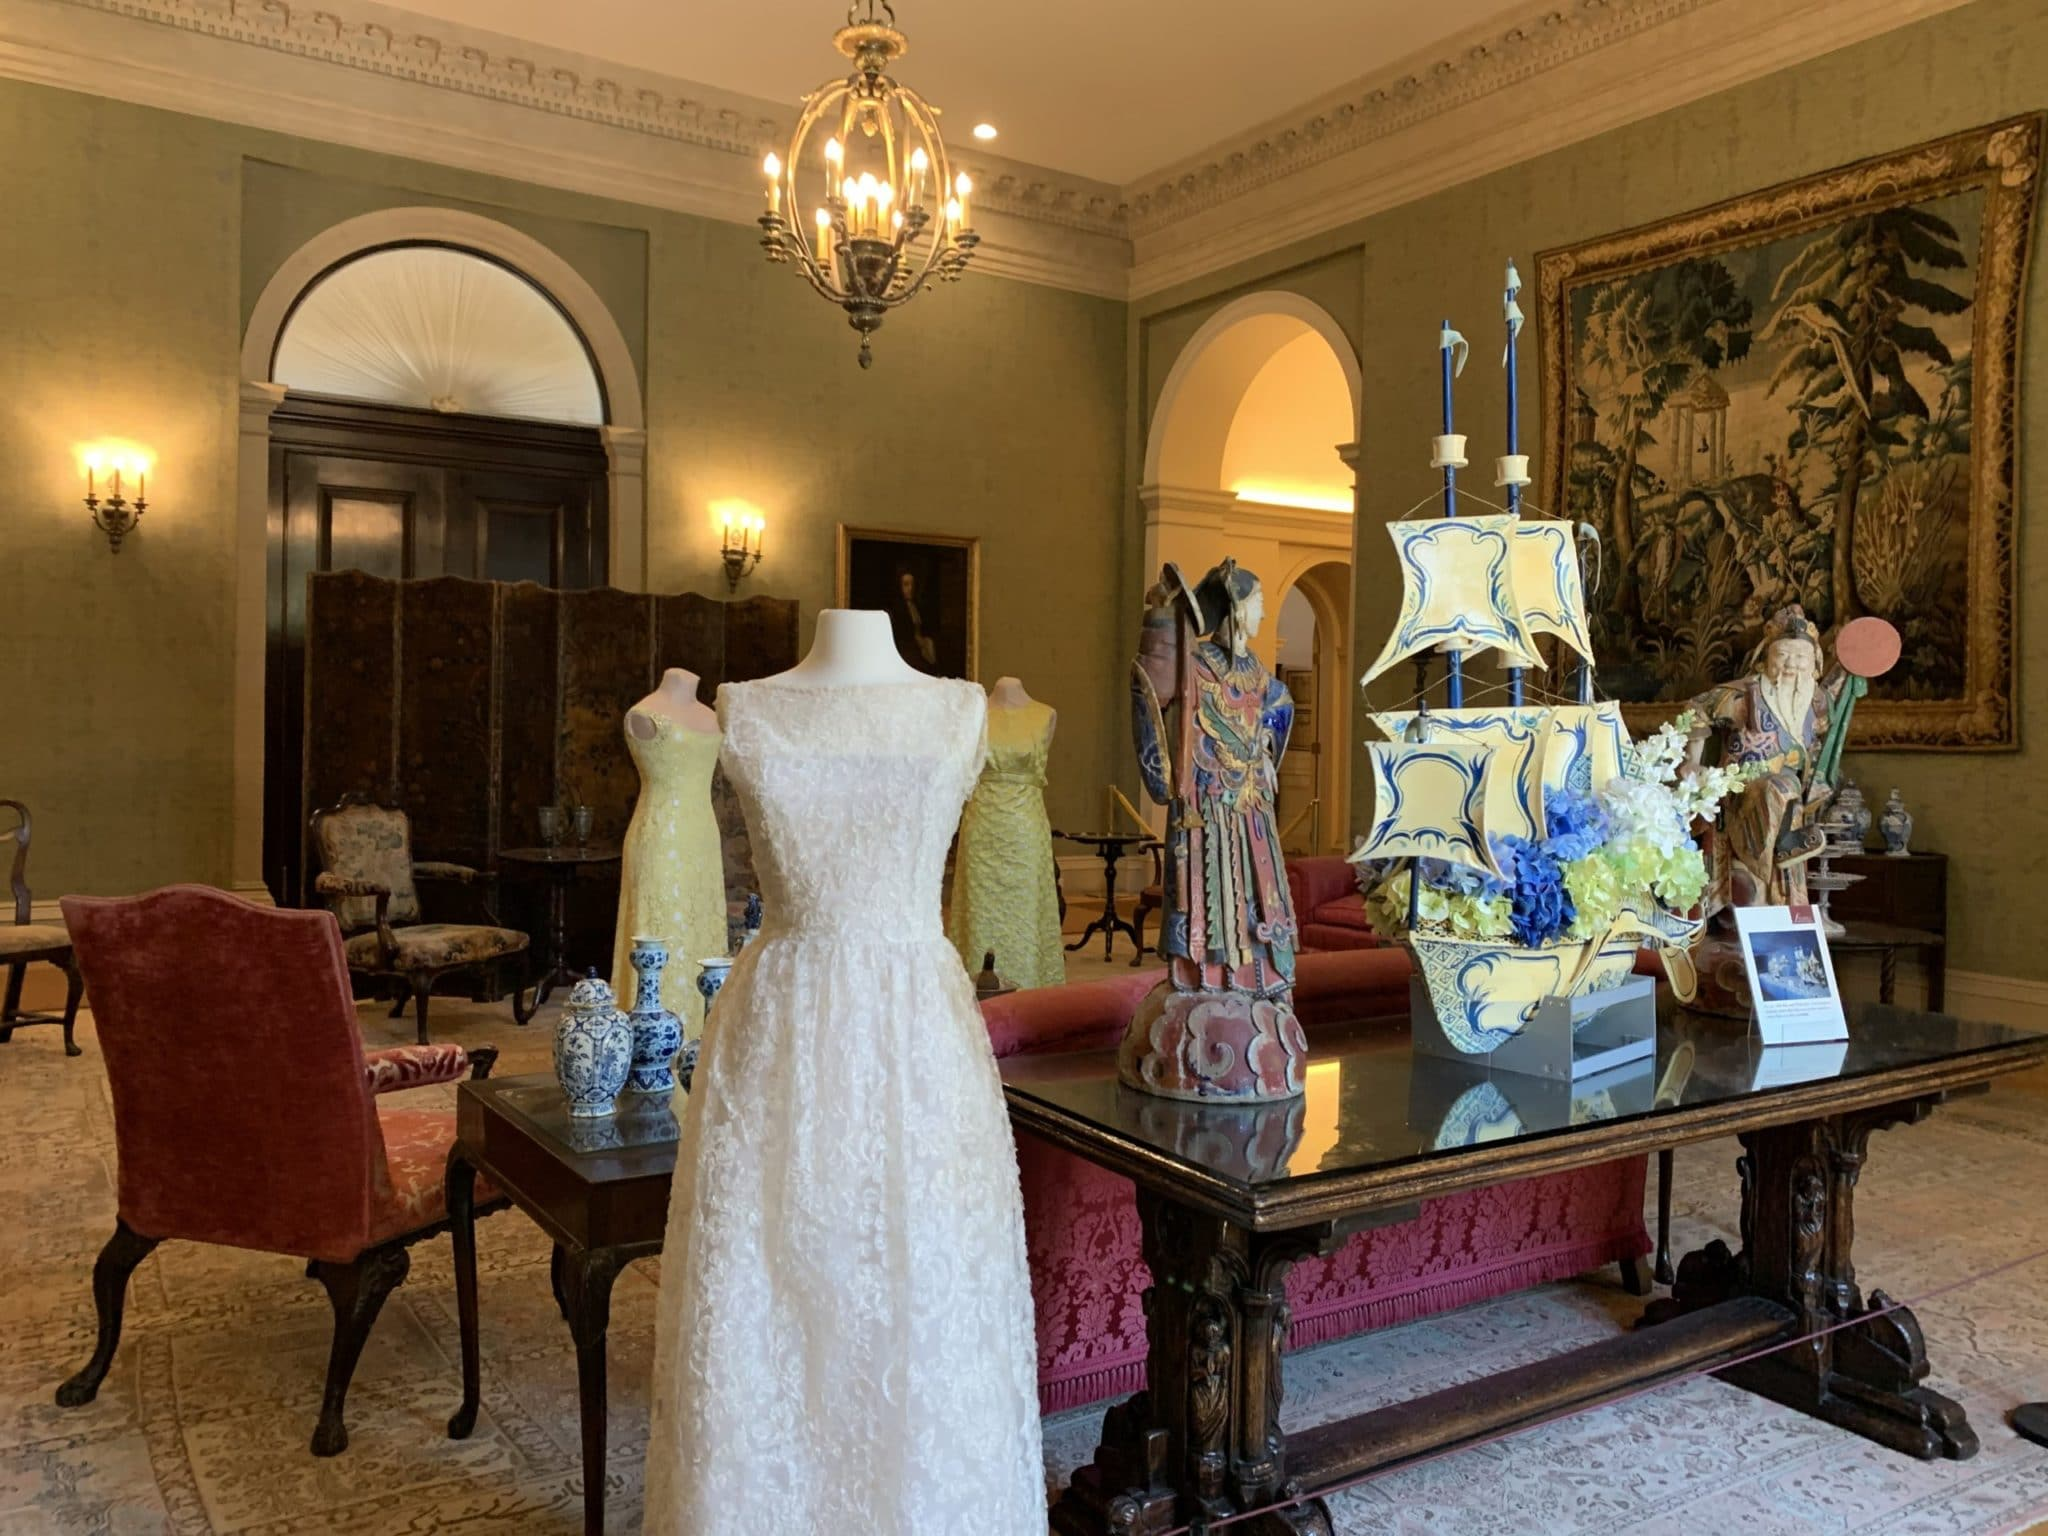 Reception Room With Party Clothes Scaled